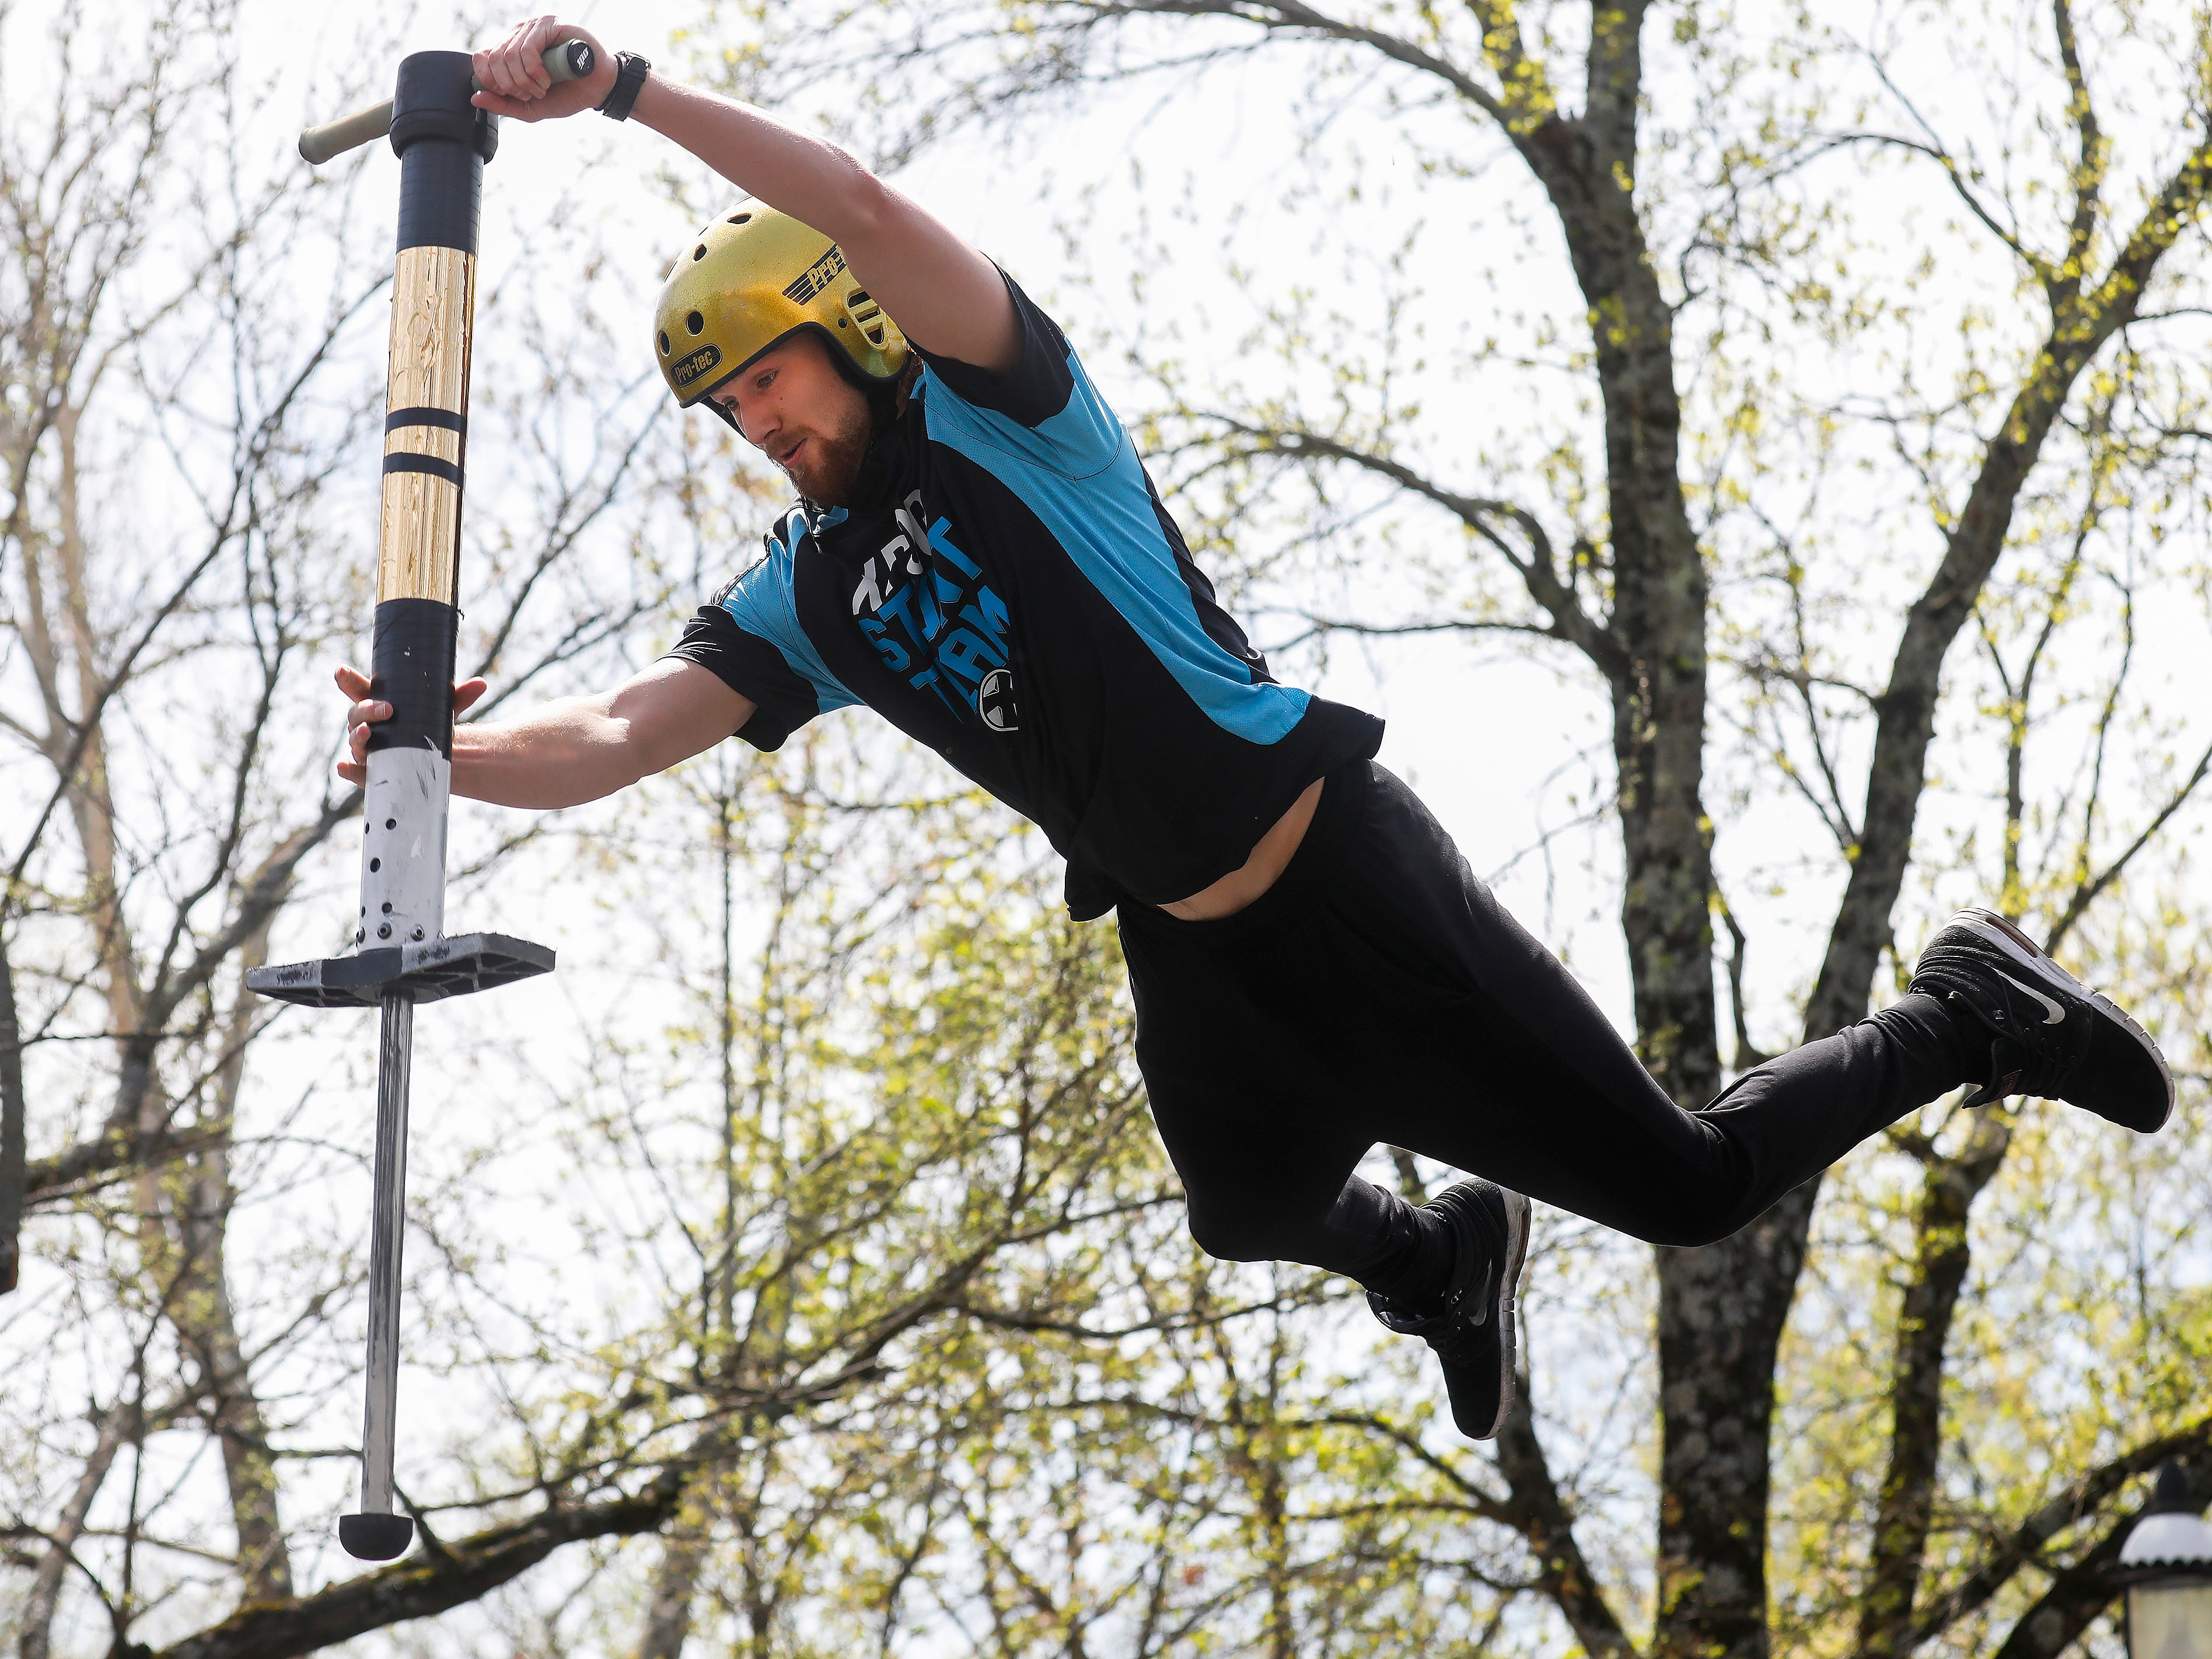 Harry White, a member of the X-Pogo Stunt Team, performs as a part of Festival of Wonder on Wednesday, April 10, 2019 at Silver Dollar City. The event runs Wednesdays through Sundays, April 10-28.